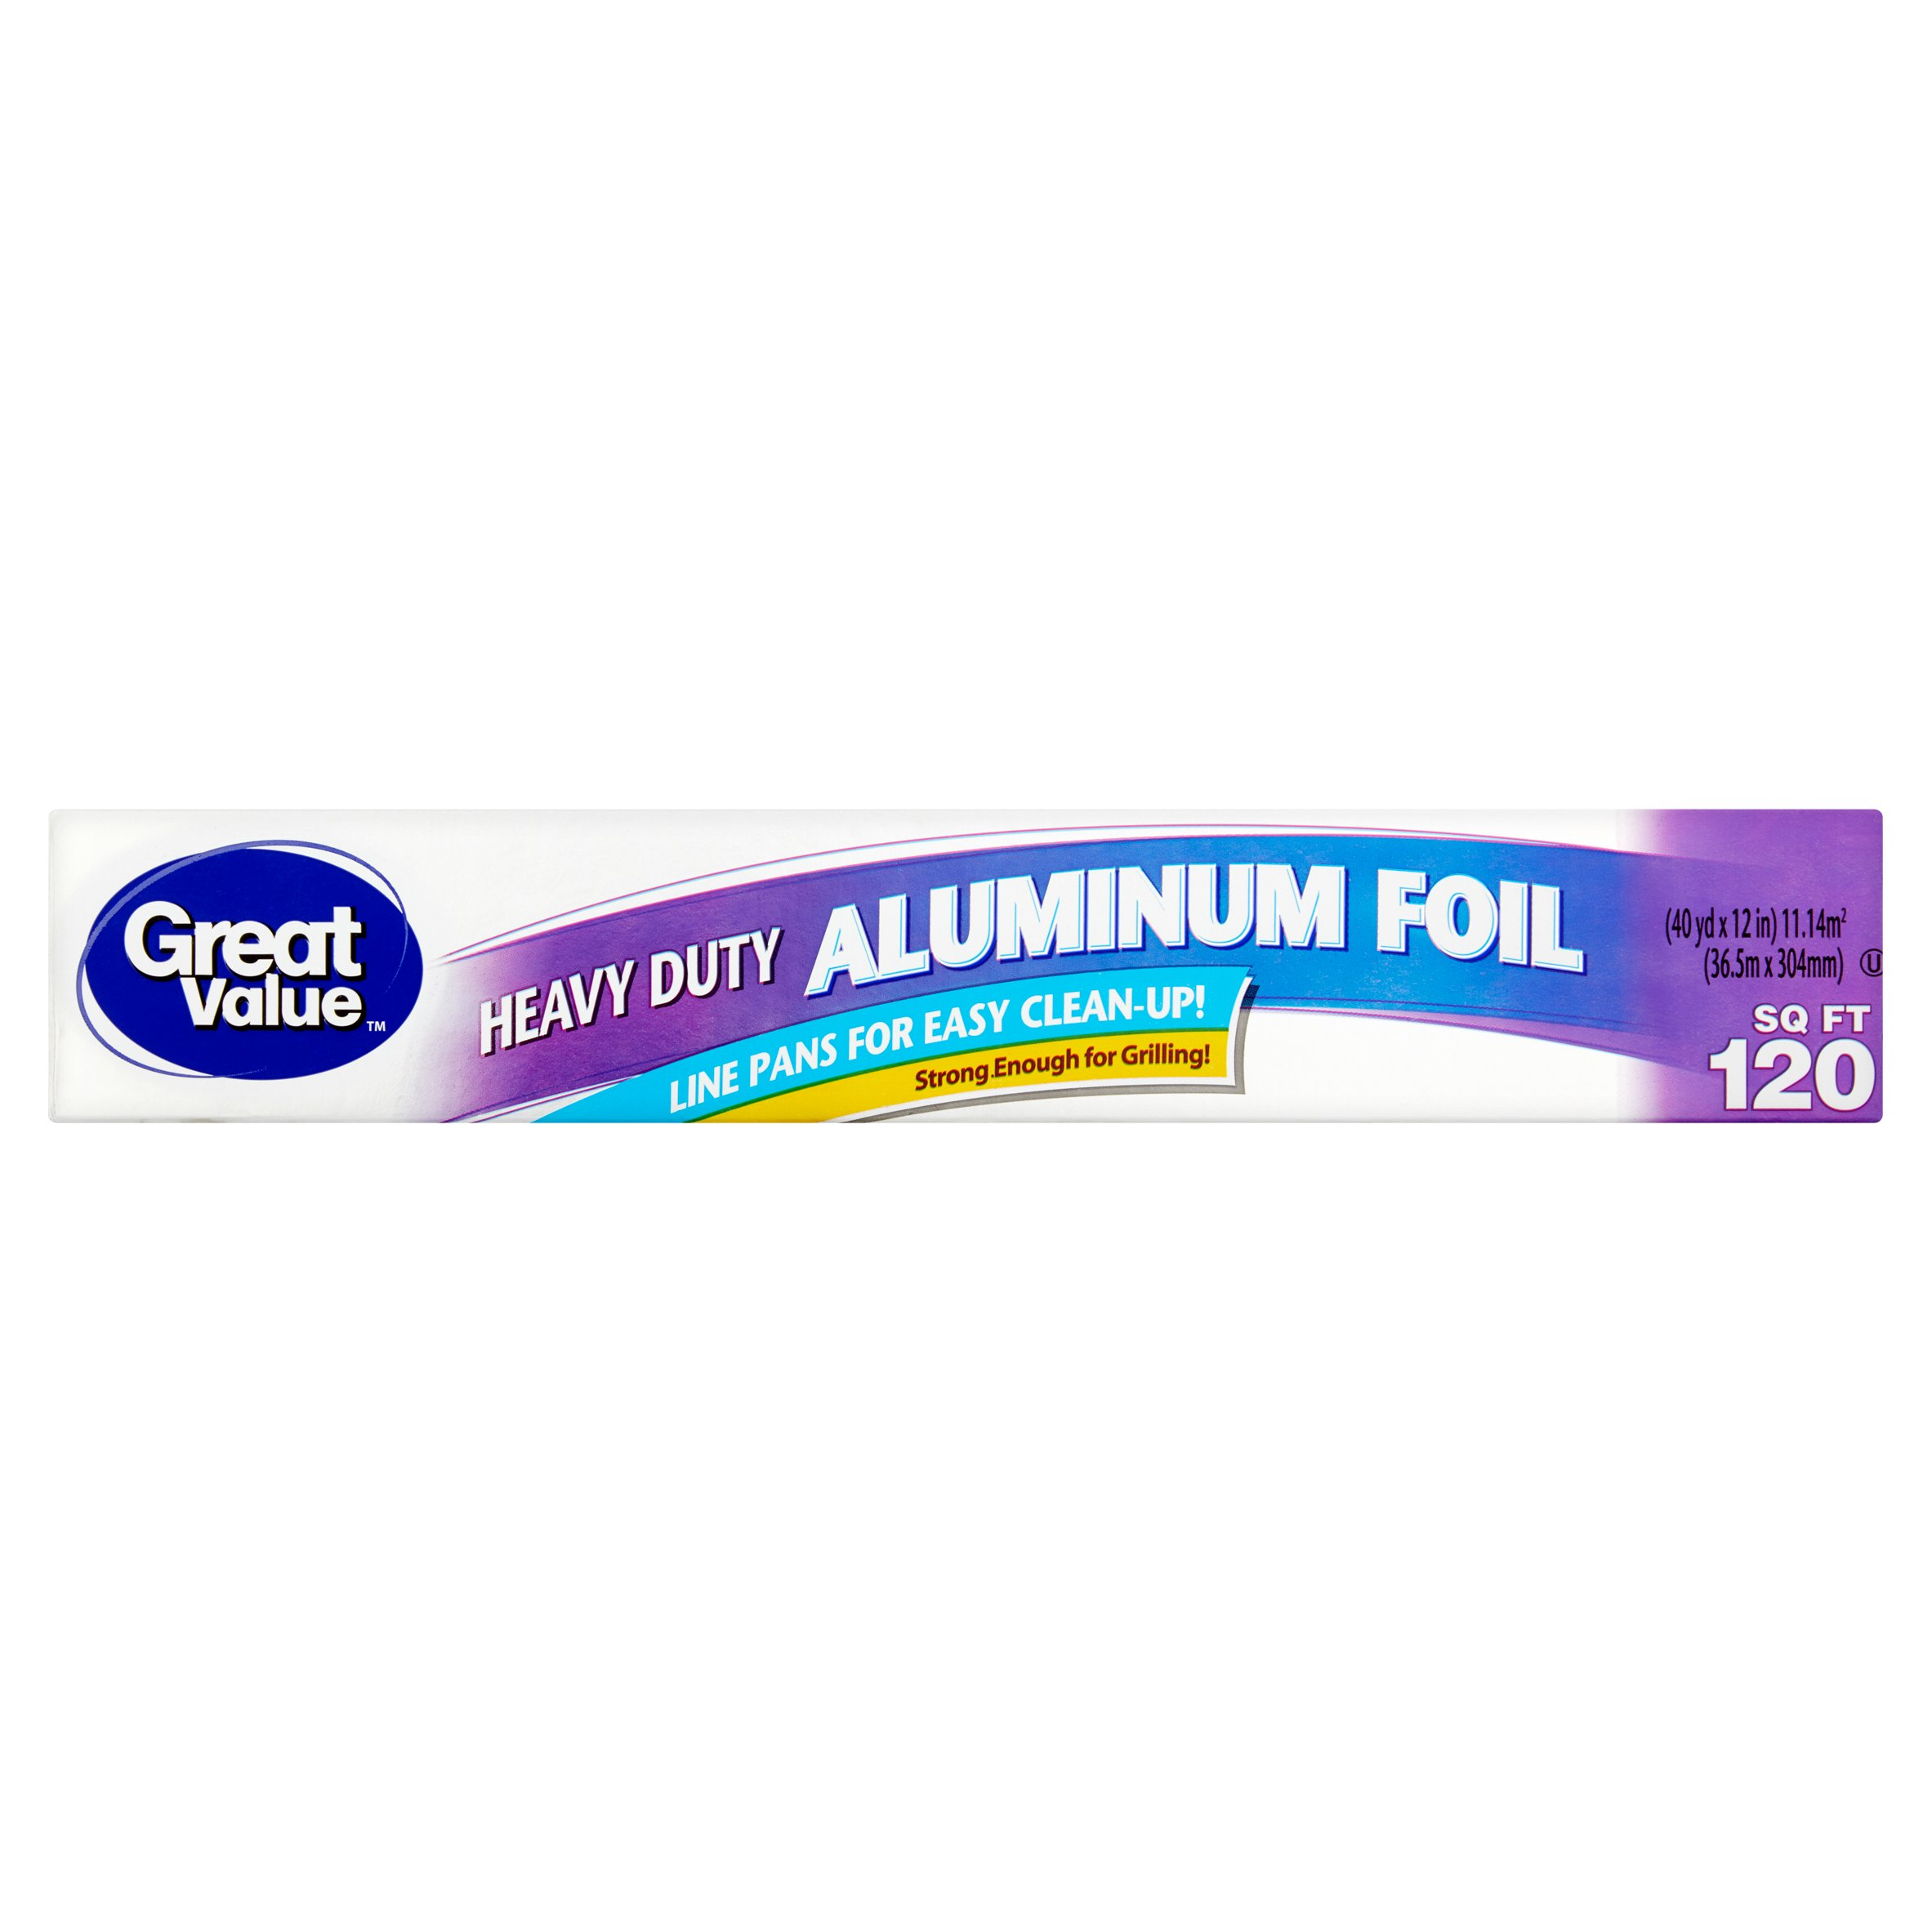 Great Value Heavy Duty Aluminum Foil, 120 sq ft